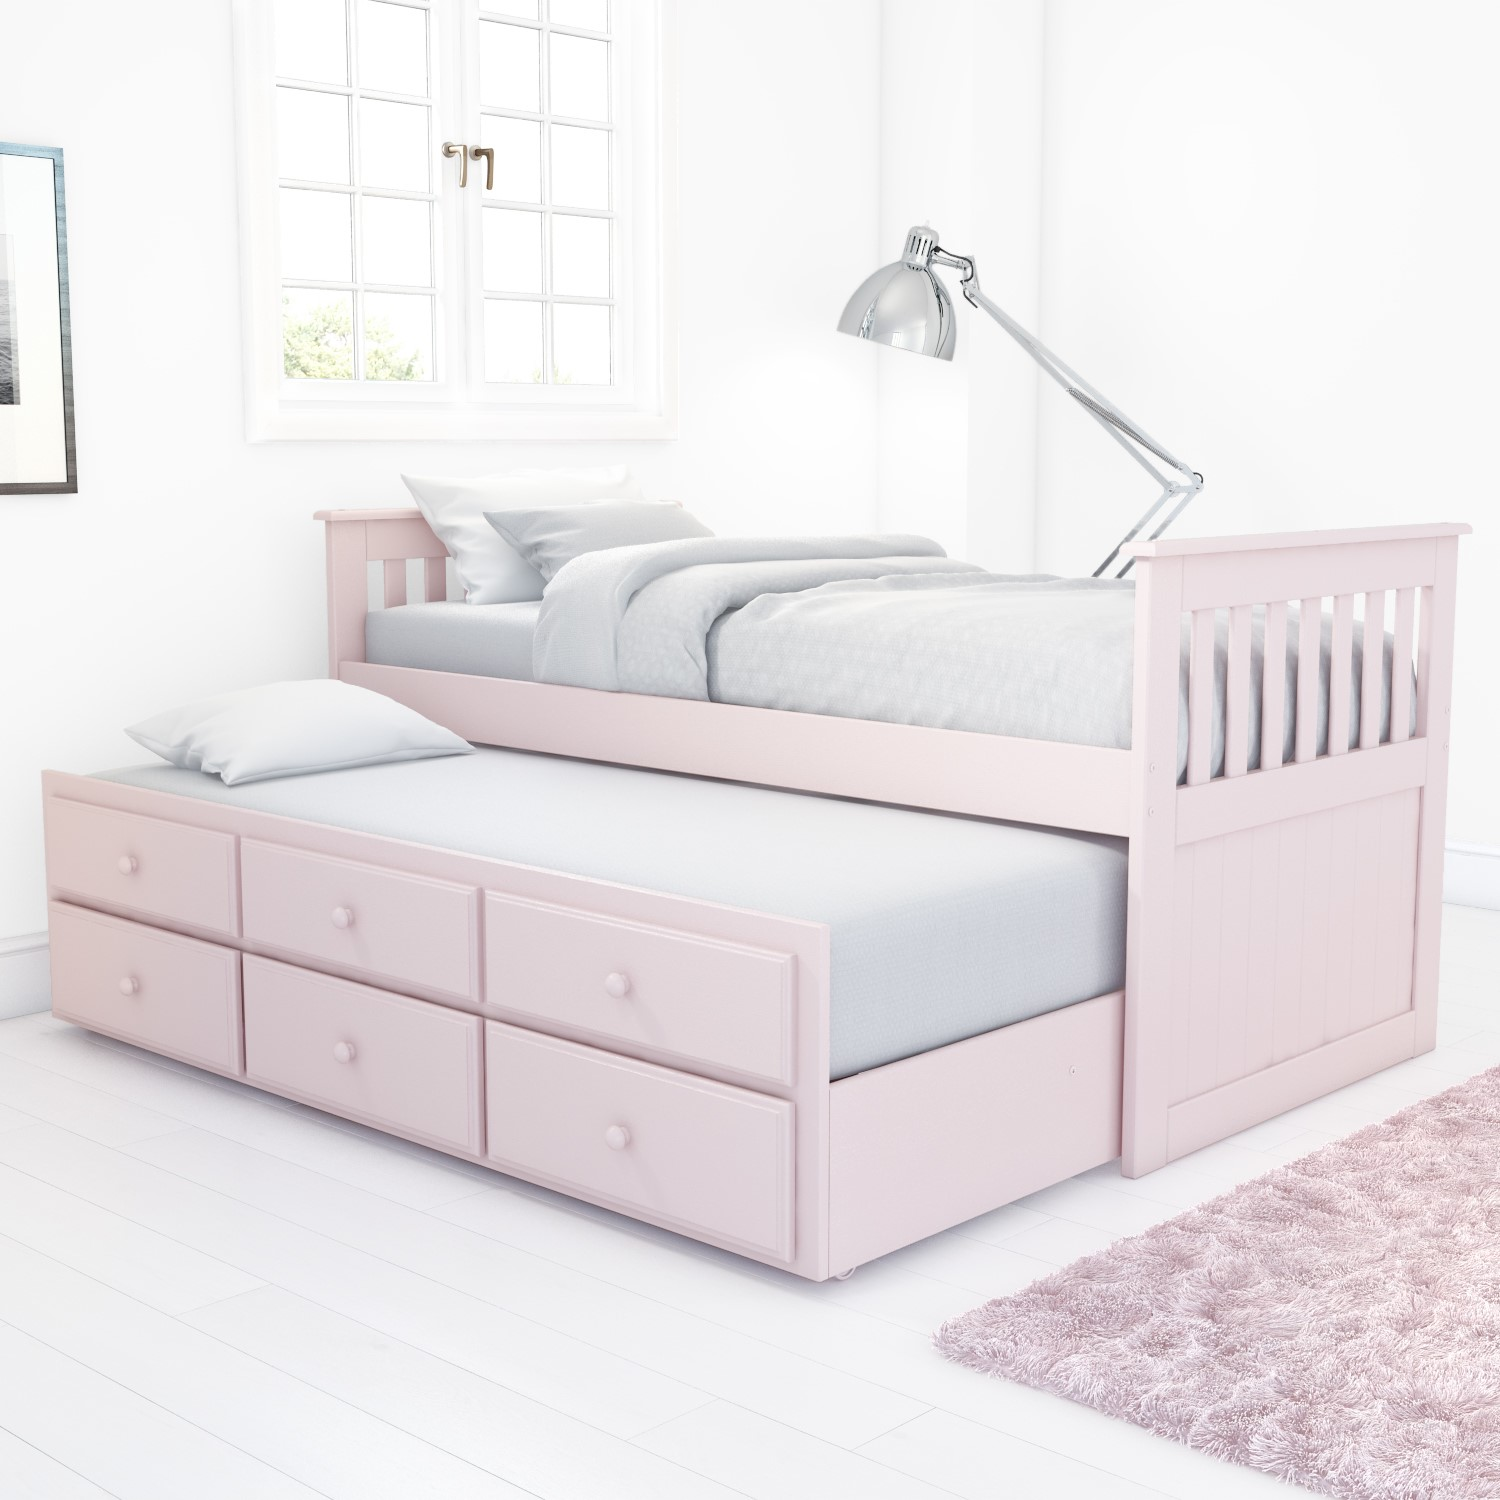 Oxford Captains Guest Bed With Storage In Light Pink Trundle Bed Included Buyitdirect Ie